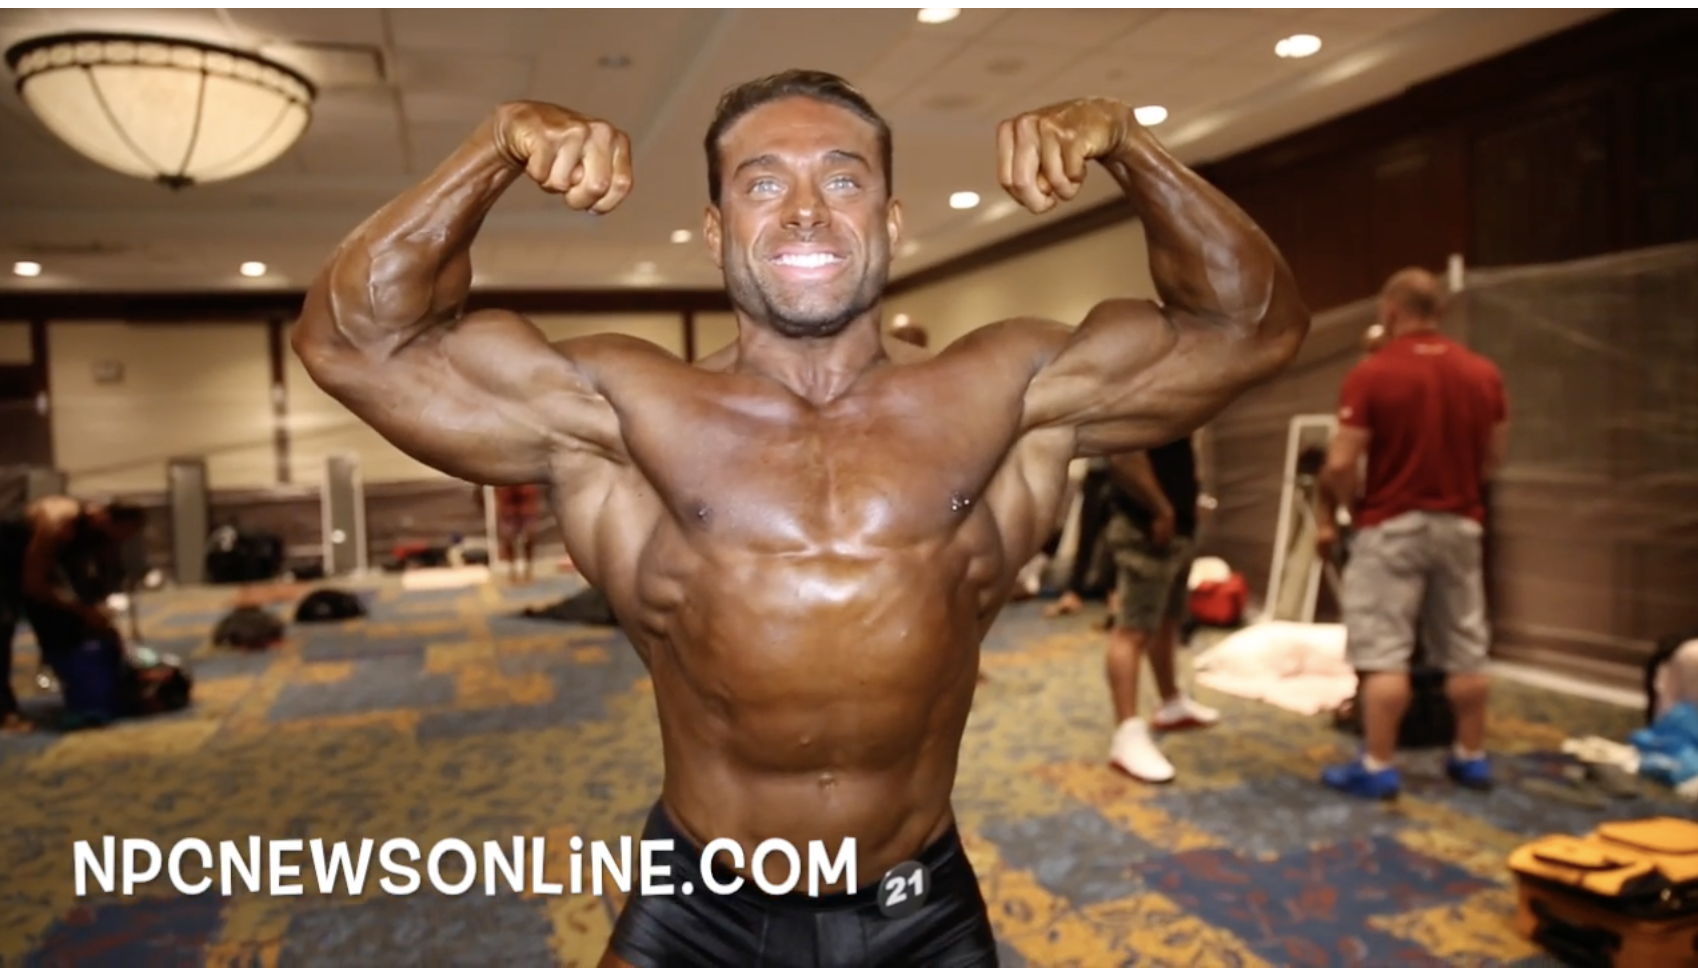 2017 IFBB PITTSBURGH MASTERS PRO MEN'S CLASSIC PHYSIQUE BACKSTAGE VIDEO